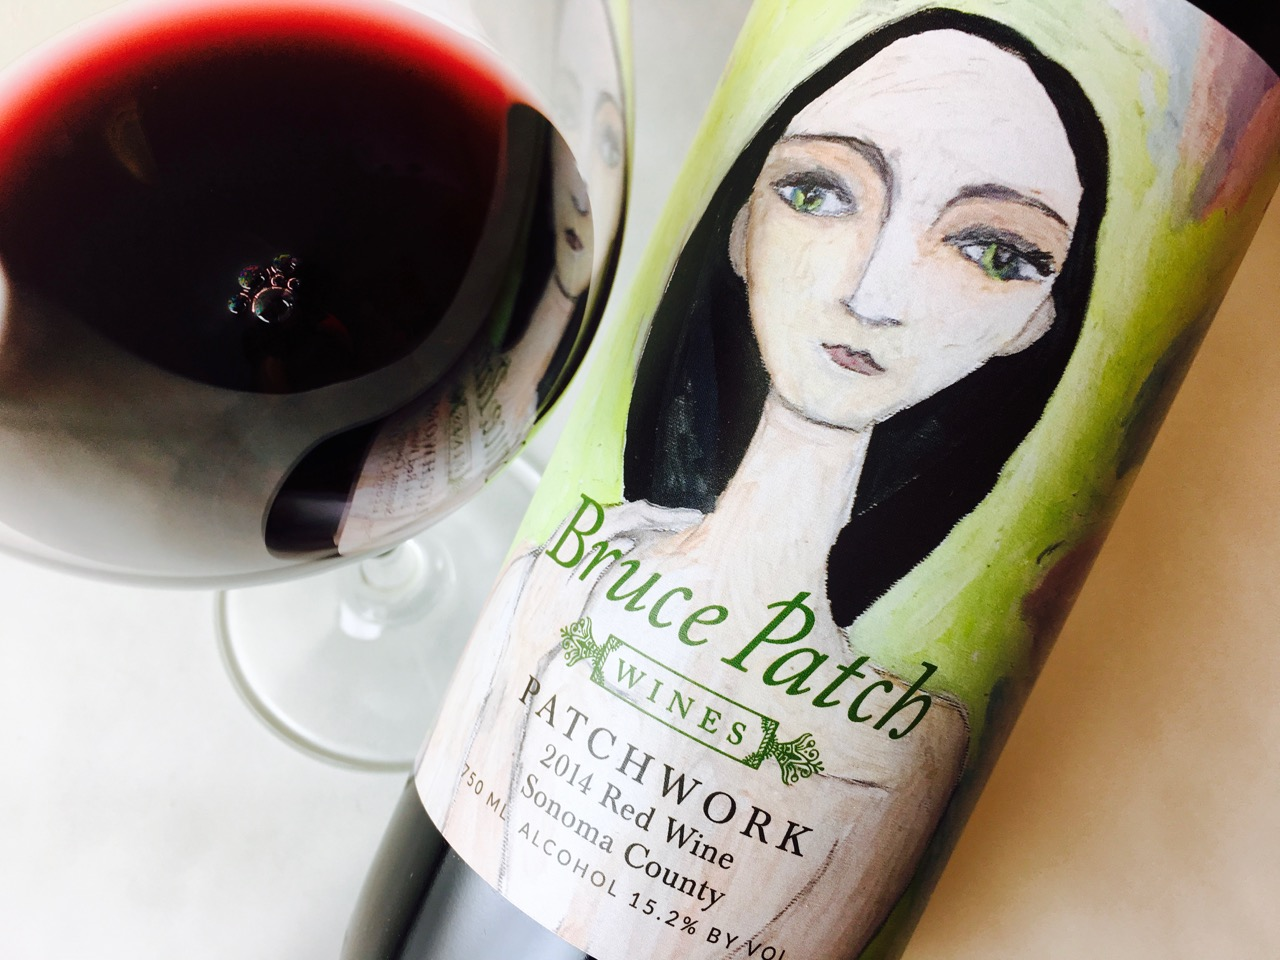 2014 Bruce Patch Wines Red Blend Patchwork Sonoma County